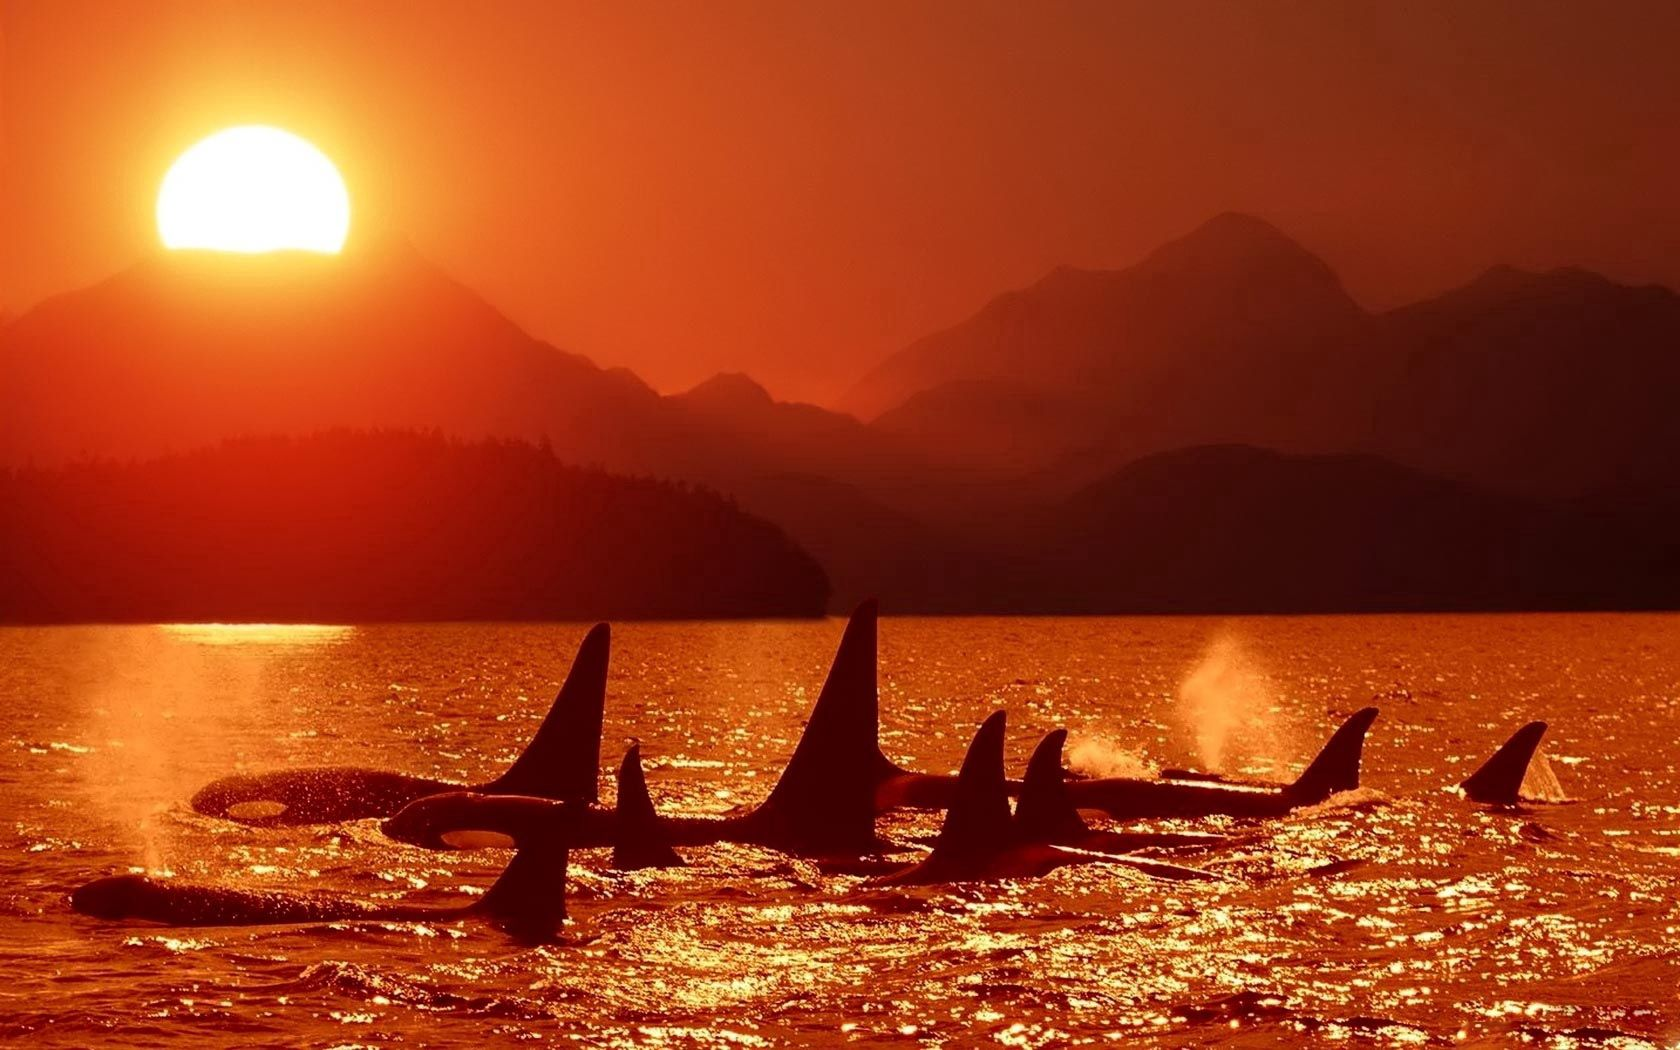 97517 download wallpaper Animals, Sunset, Sky, Dolfins, Sea, Killer Whales screensavers and pictures for free